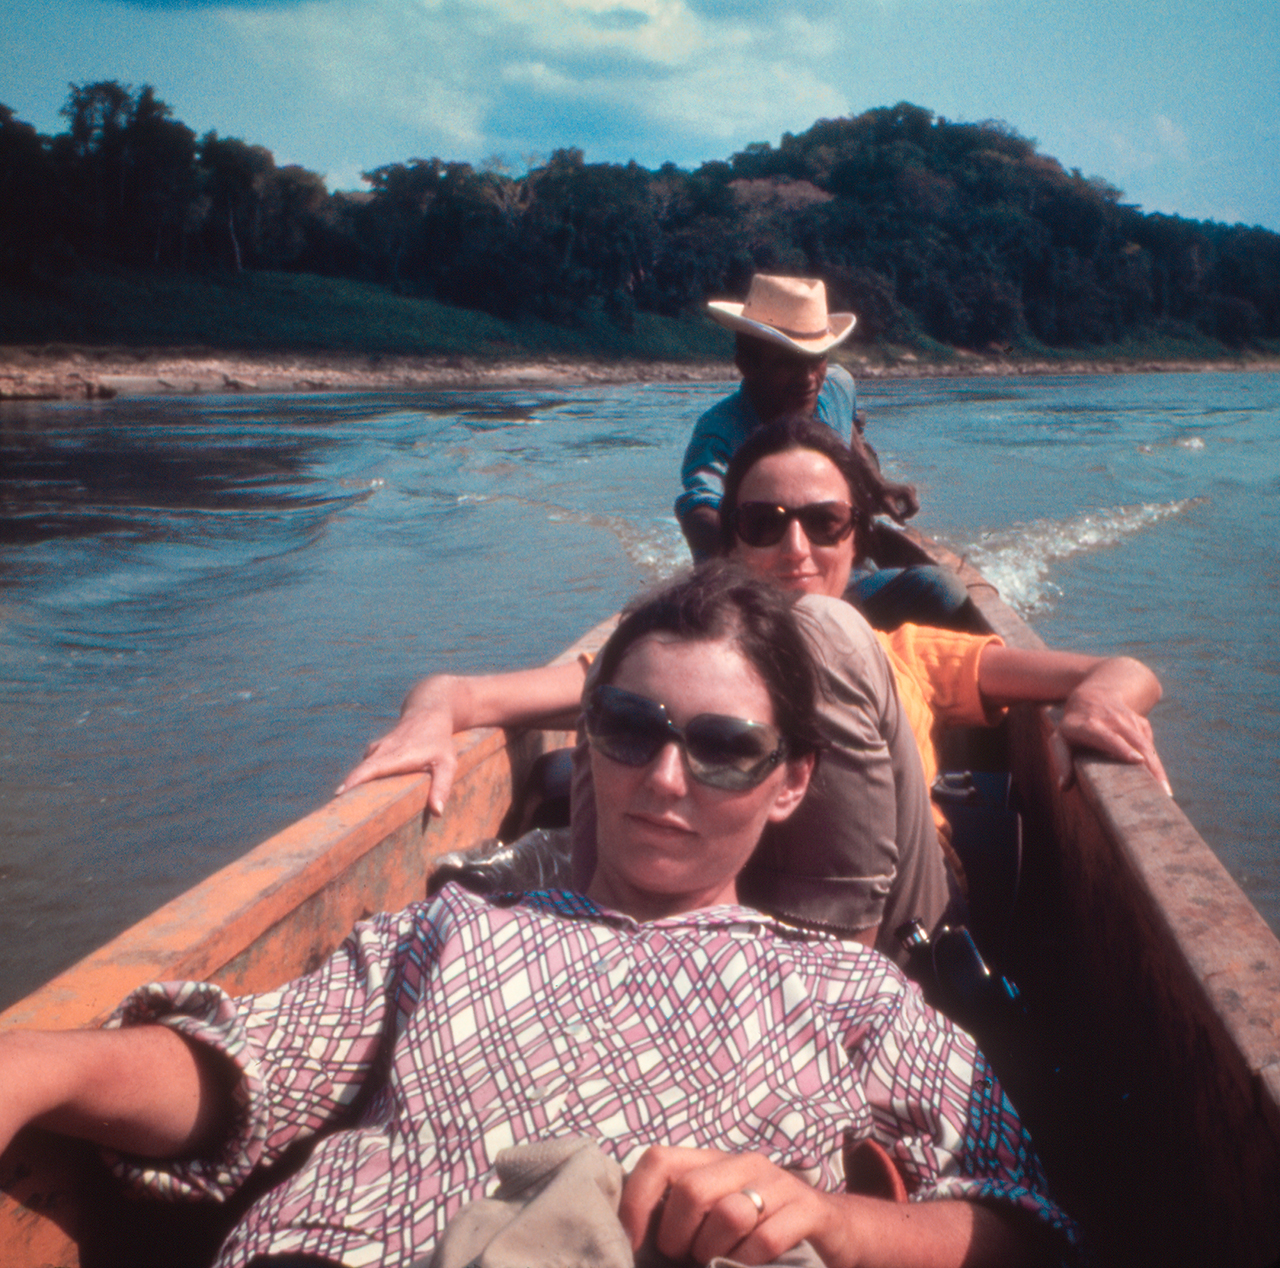 Nancy Holt (front) and Virginia Dwan (middle) in the Yucatán (1969), from 'Troublemakers' (photo © Dwan Gallery Archives, New York, used by premission)